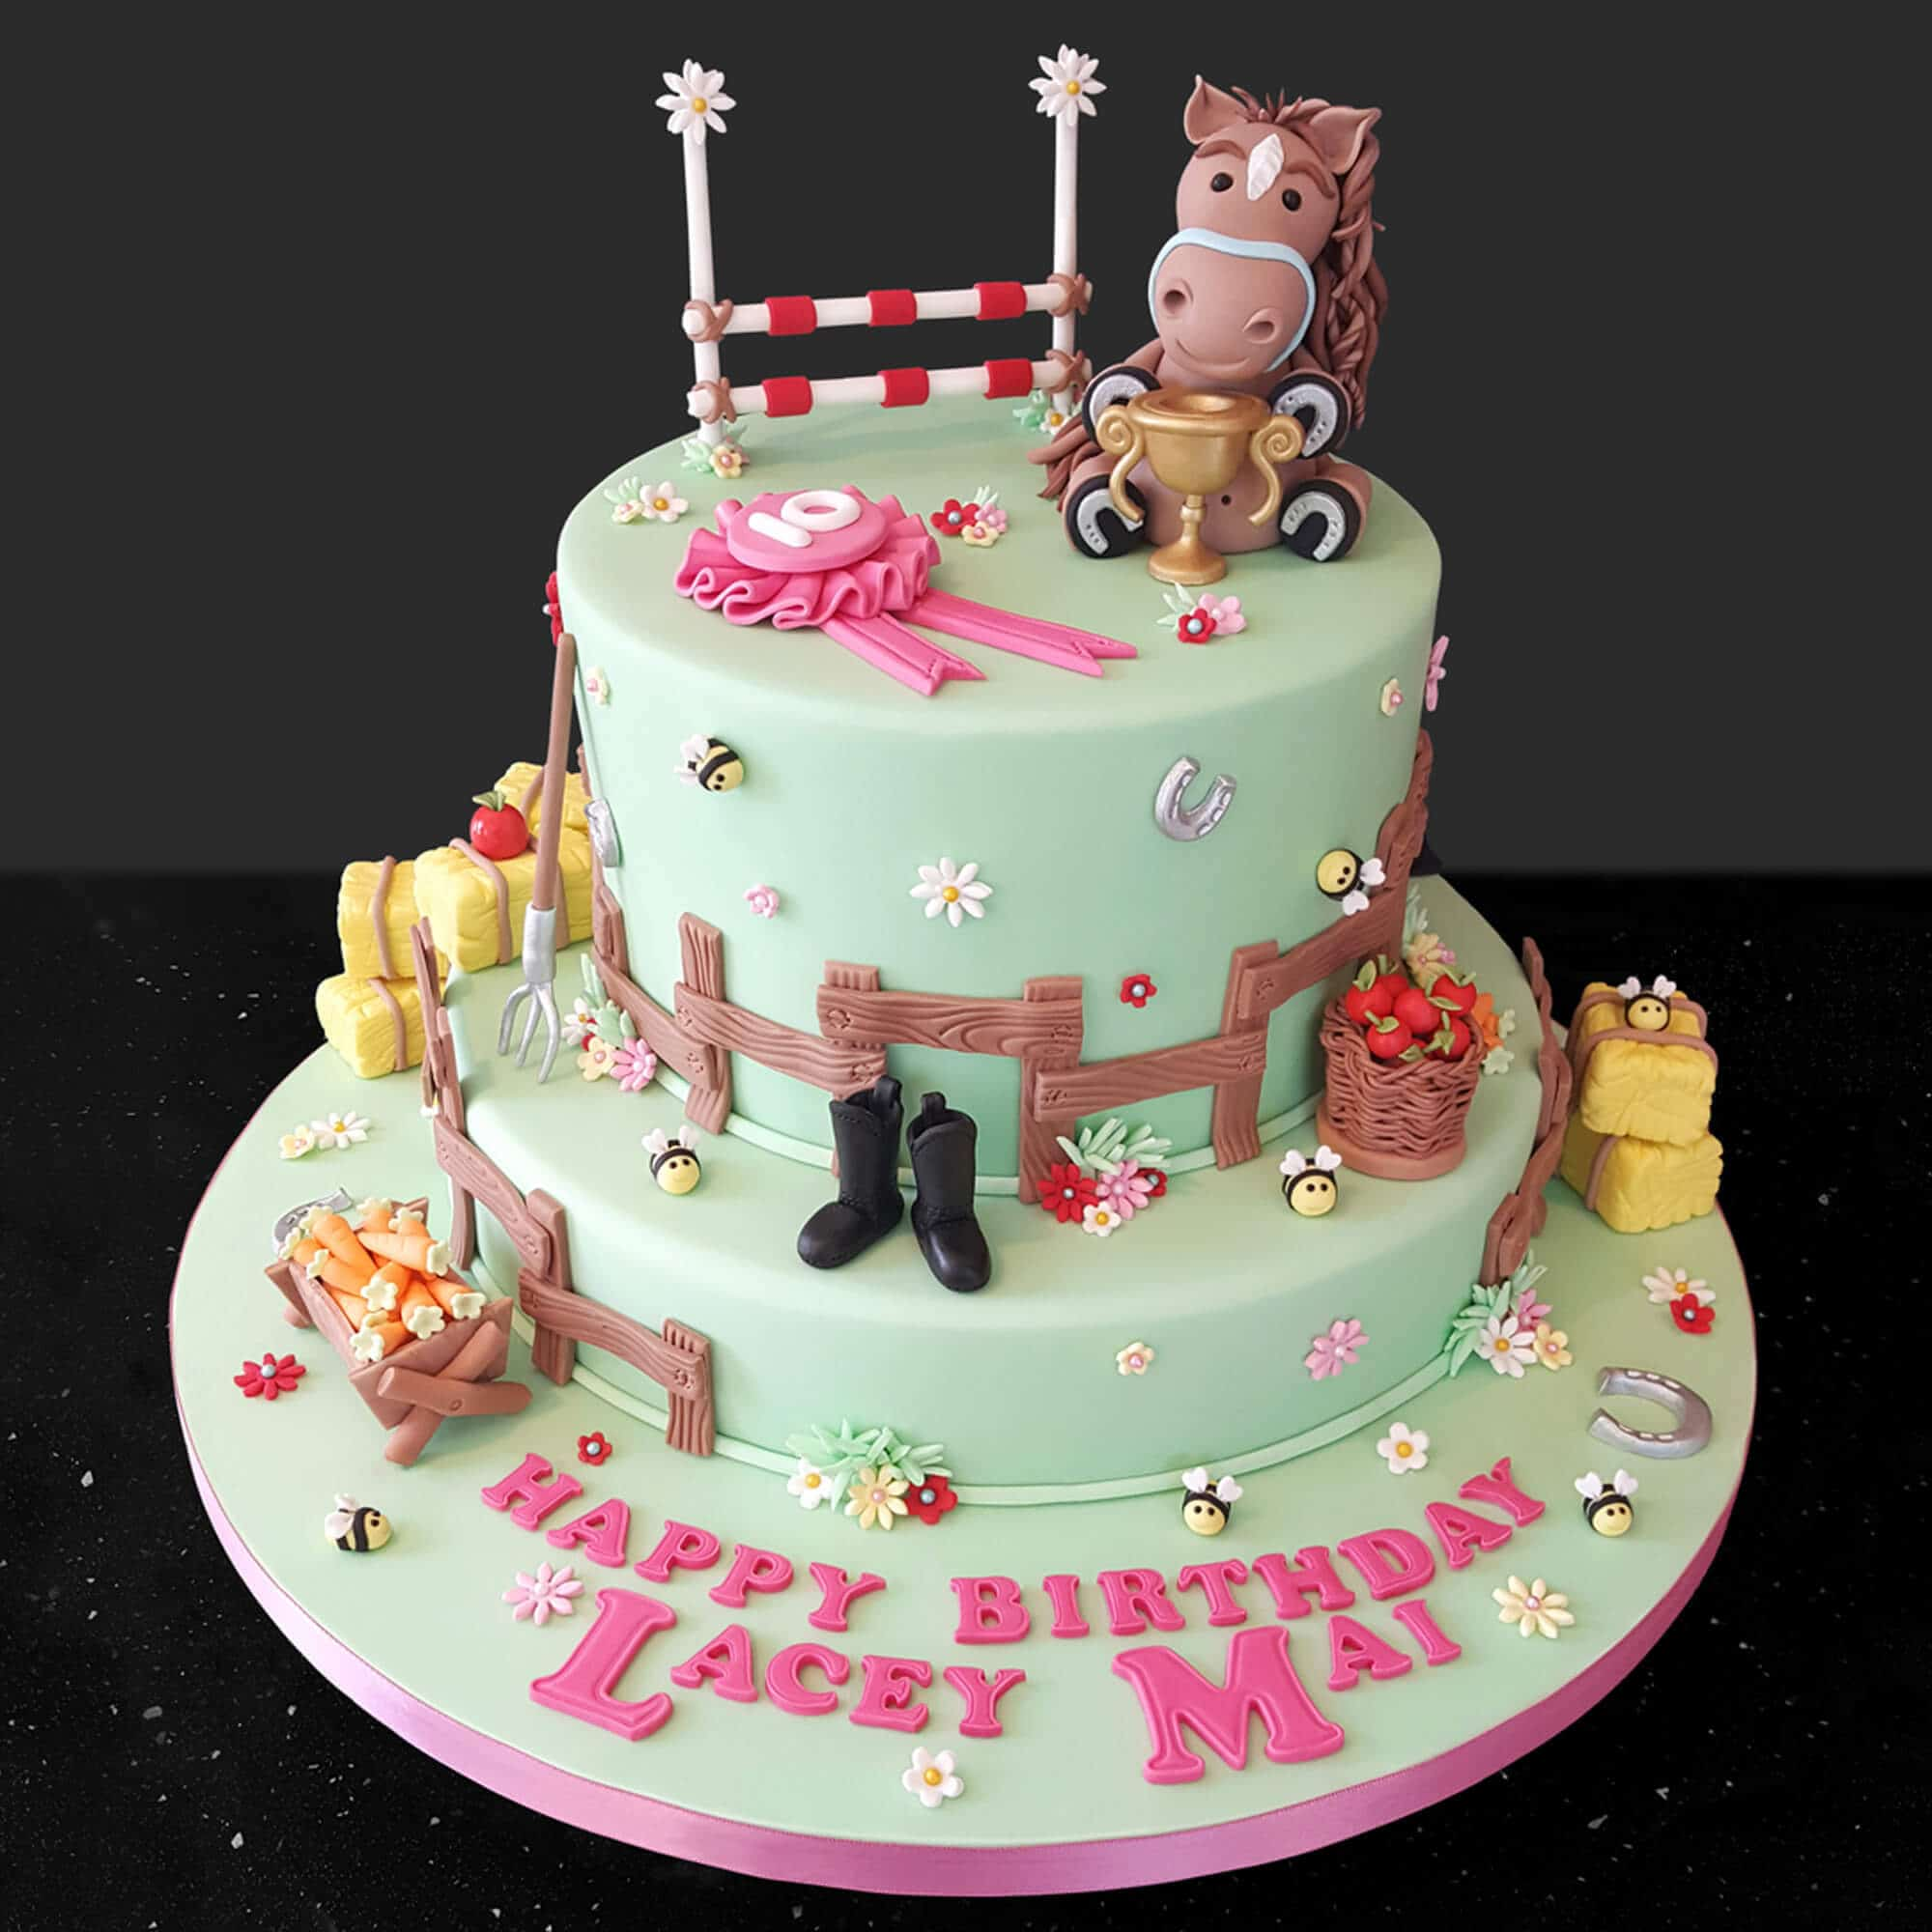 Pony themed cake design by Crafter in the Spotlight participant Cake No Mistake